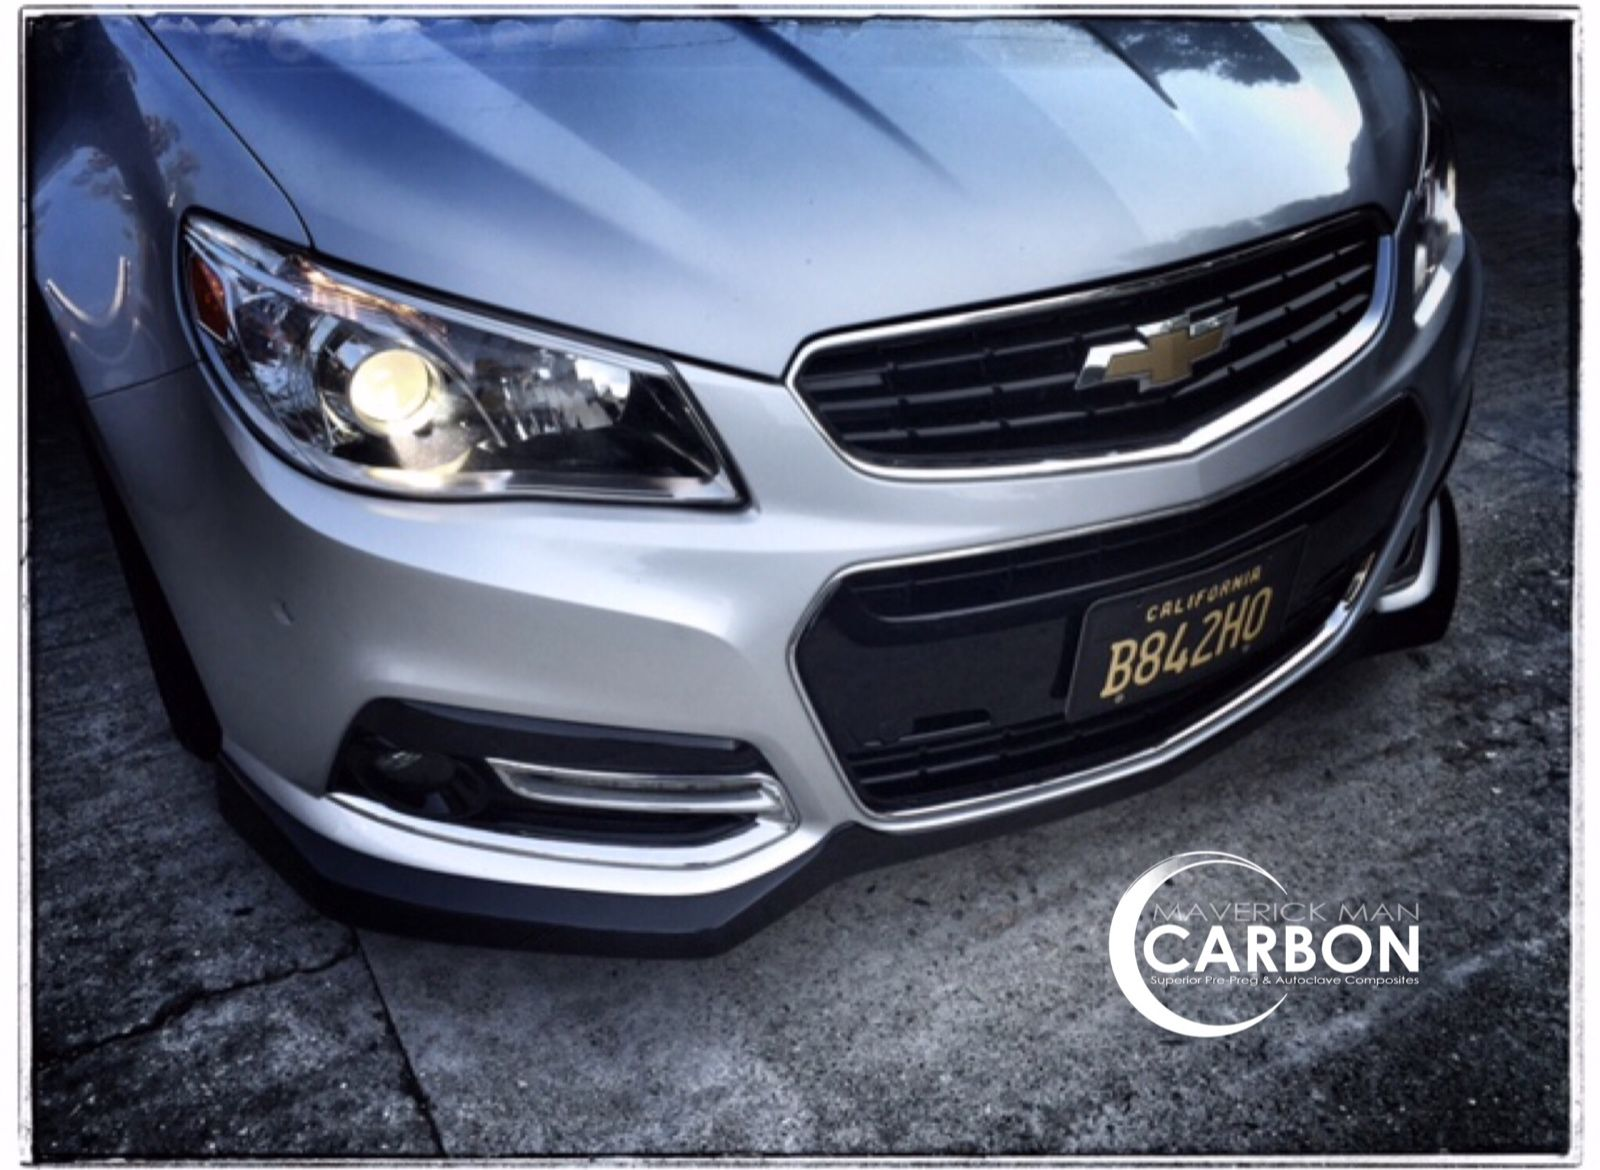 hight resolution of another happy chevy ss owner with a maverick man carbon front lip chevrolet lumina